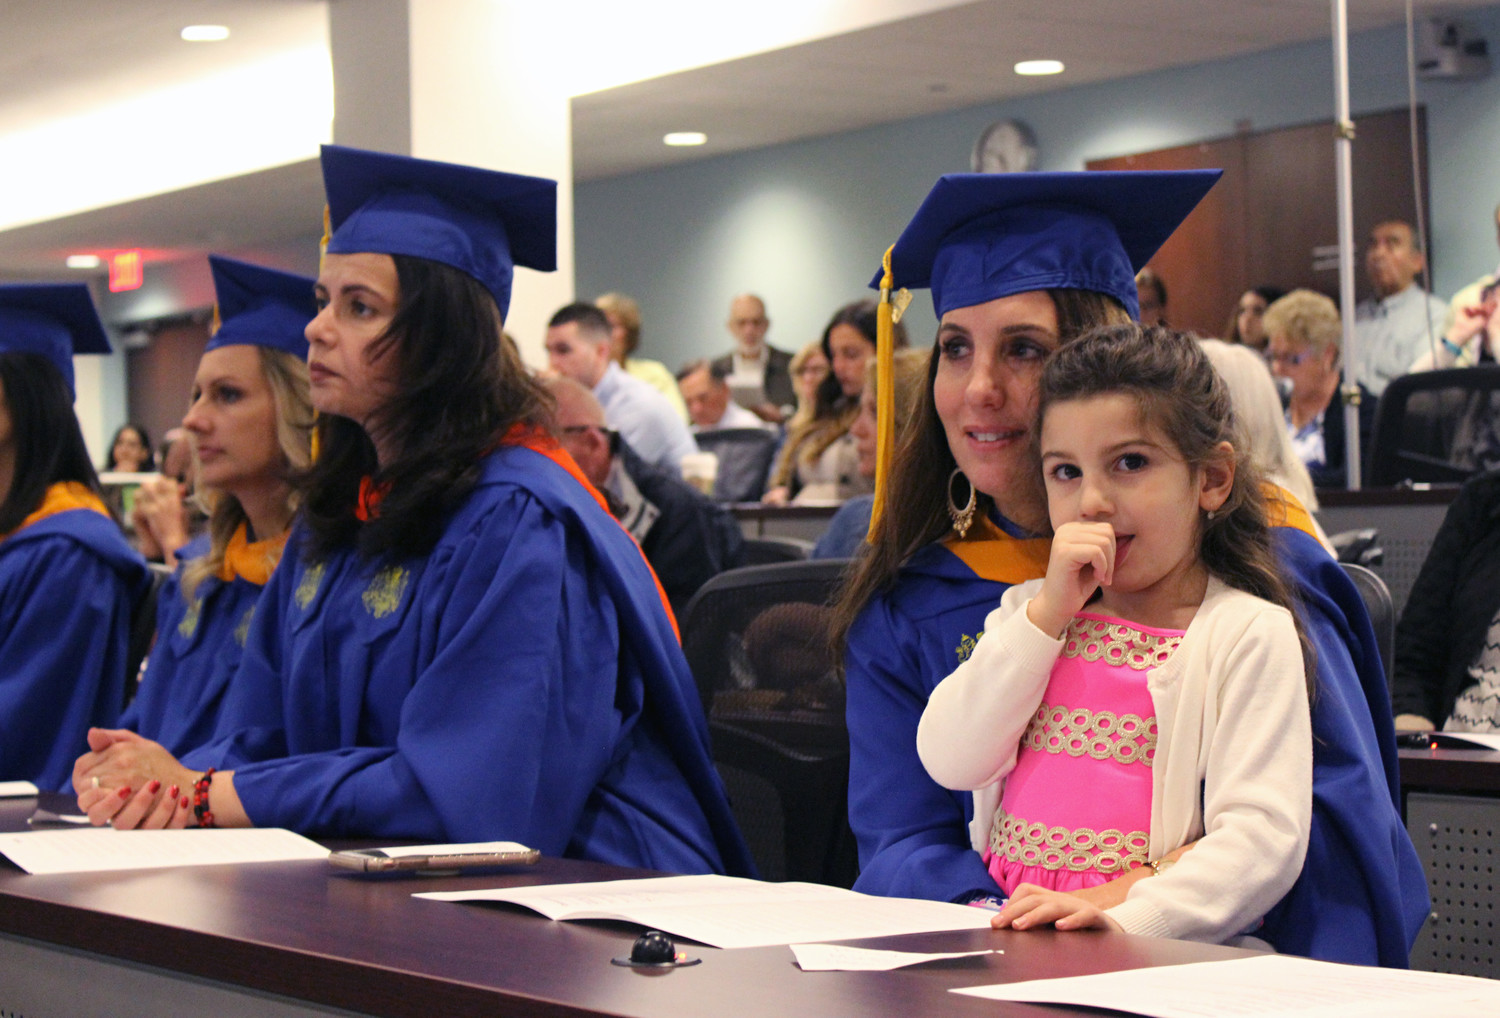 Maria Zouloufis, of Massapequa, is one of 28 students who have completed the inaugural graduate nursing program at Hofstra University and Northwell Health. Zouloufis is also raising three children, including her daughter, 5-year-old Eva Maria, pictured above. Zouloufis's two sons are George, 9, Anthony, 7.